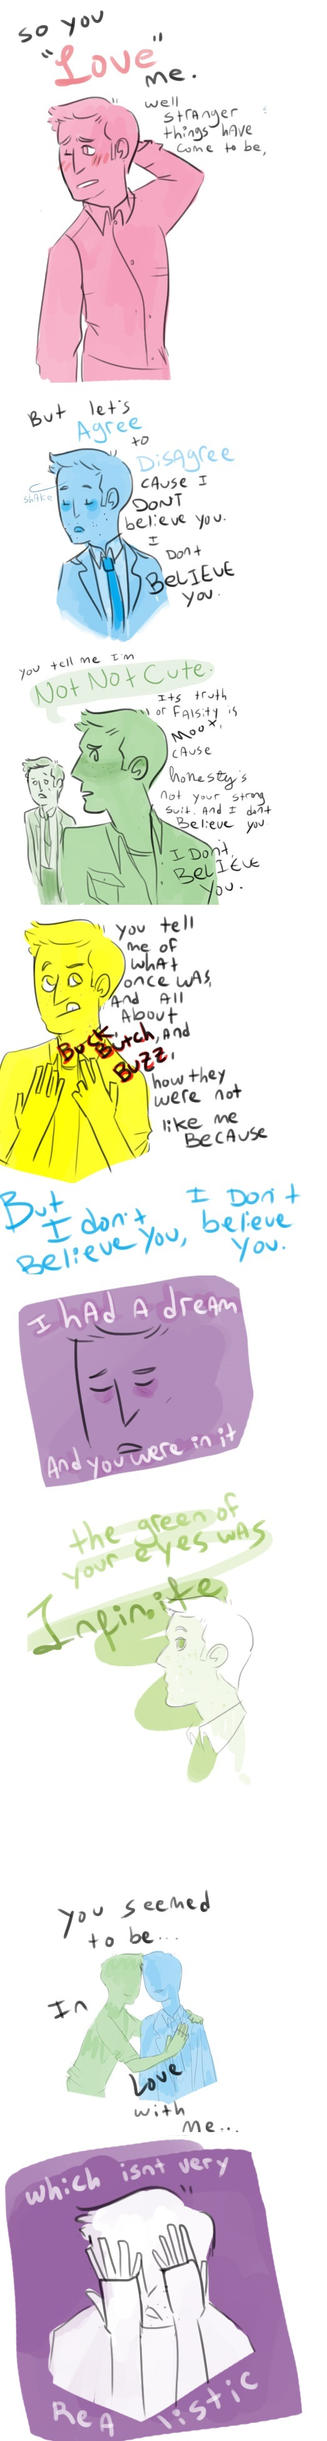 I Dont Believe You by Floral-print-boots